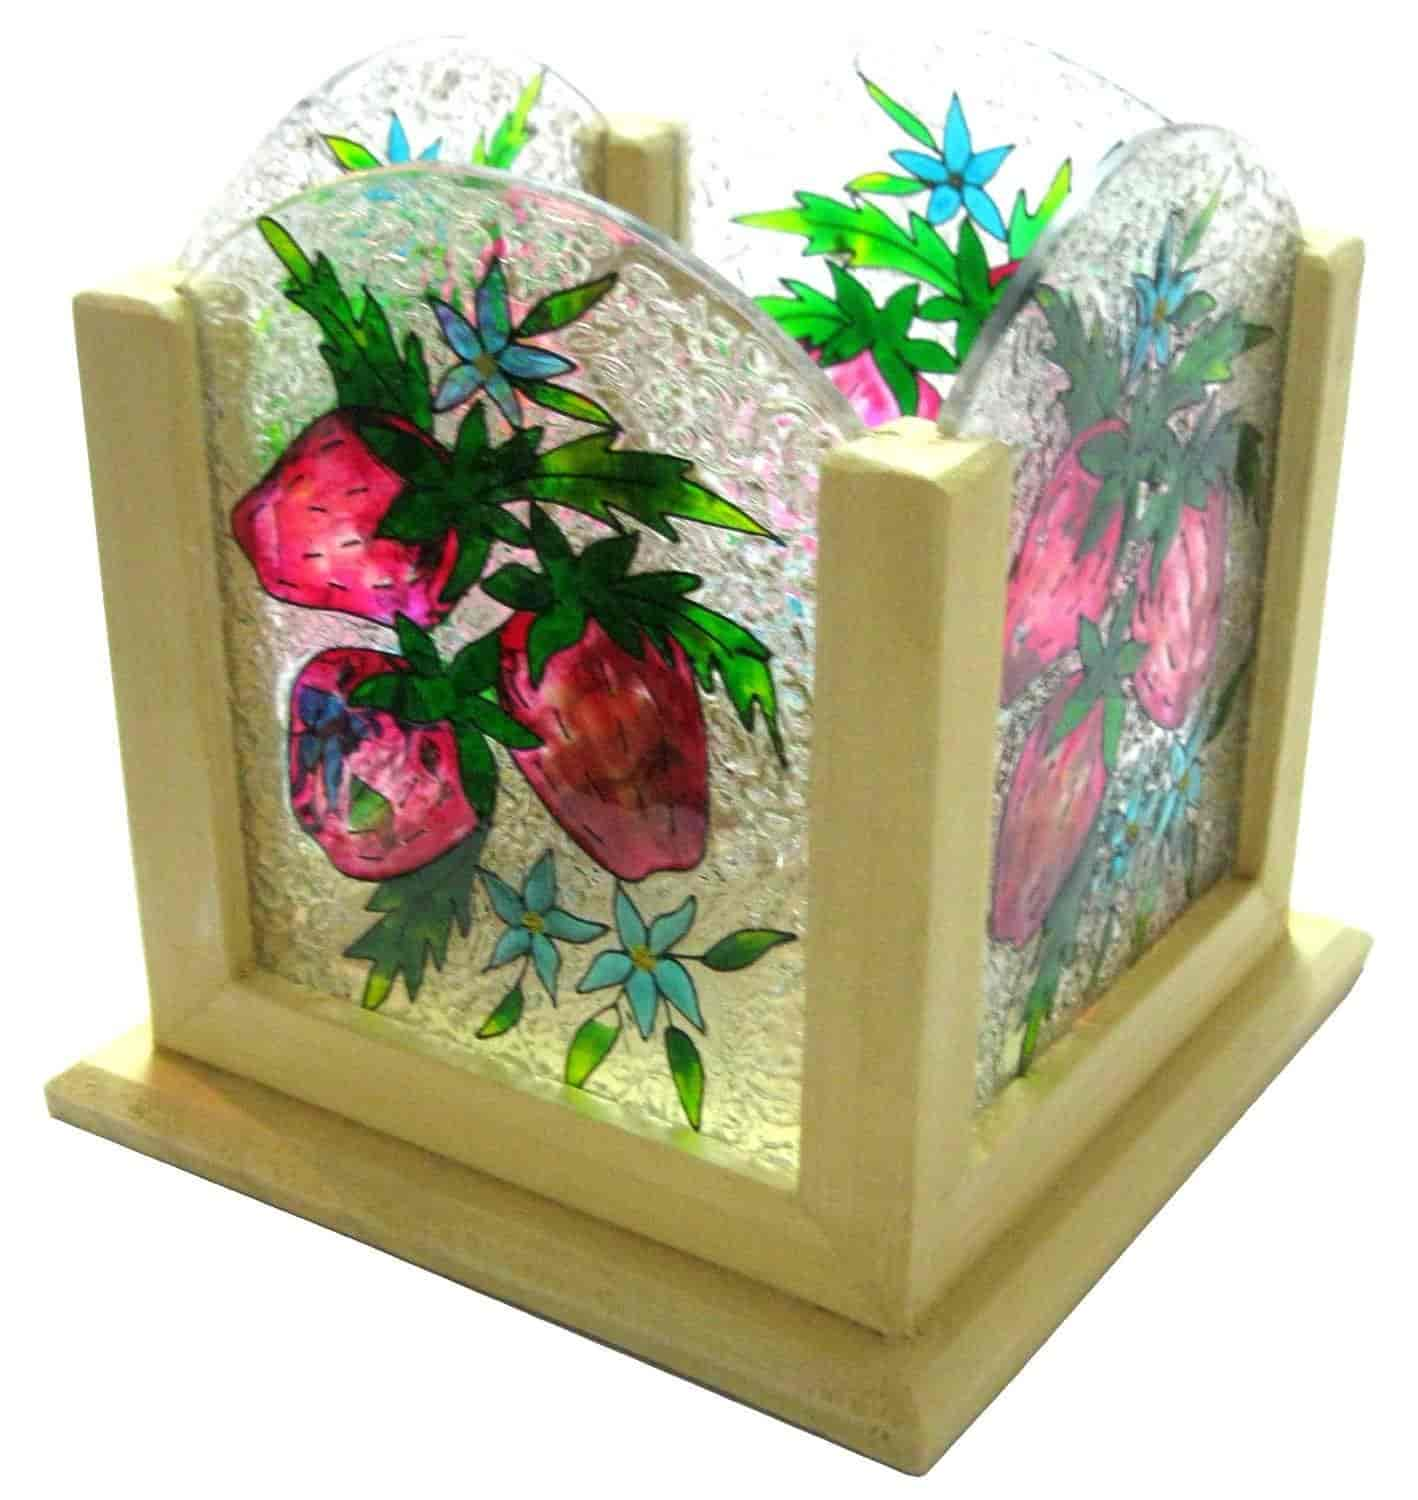 Fish aquarium just dial - Irshikaa Hues Cutlery Holder Straw Berry 16x16x16 Cm